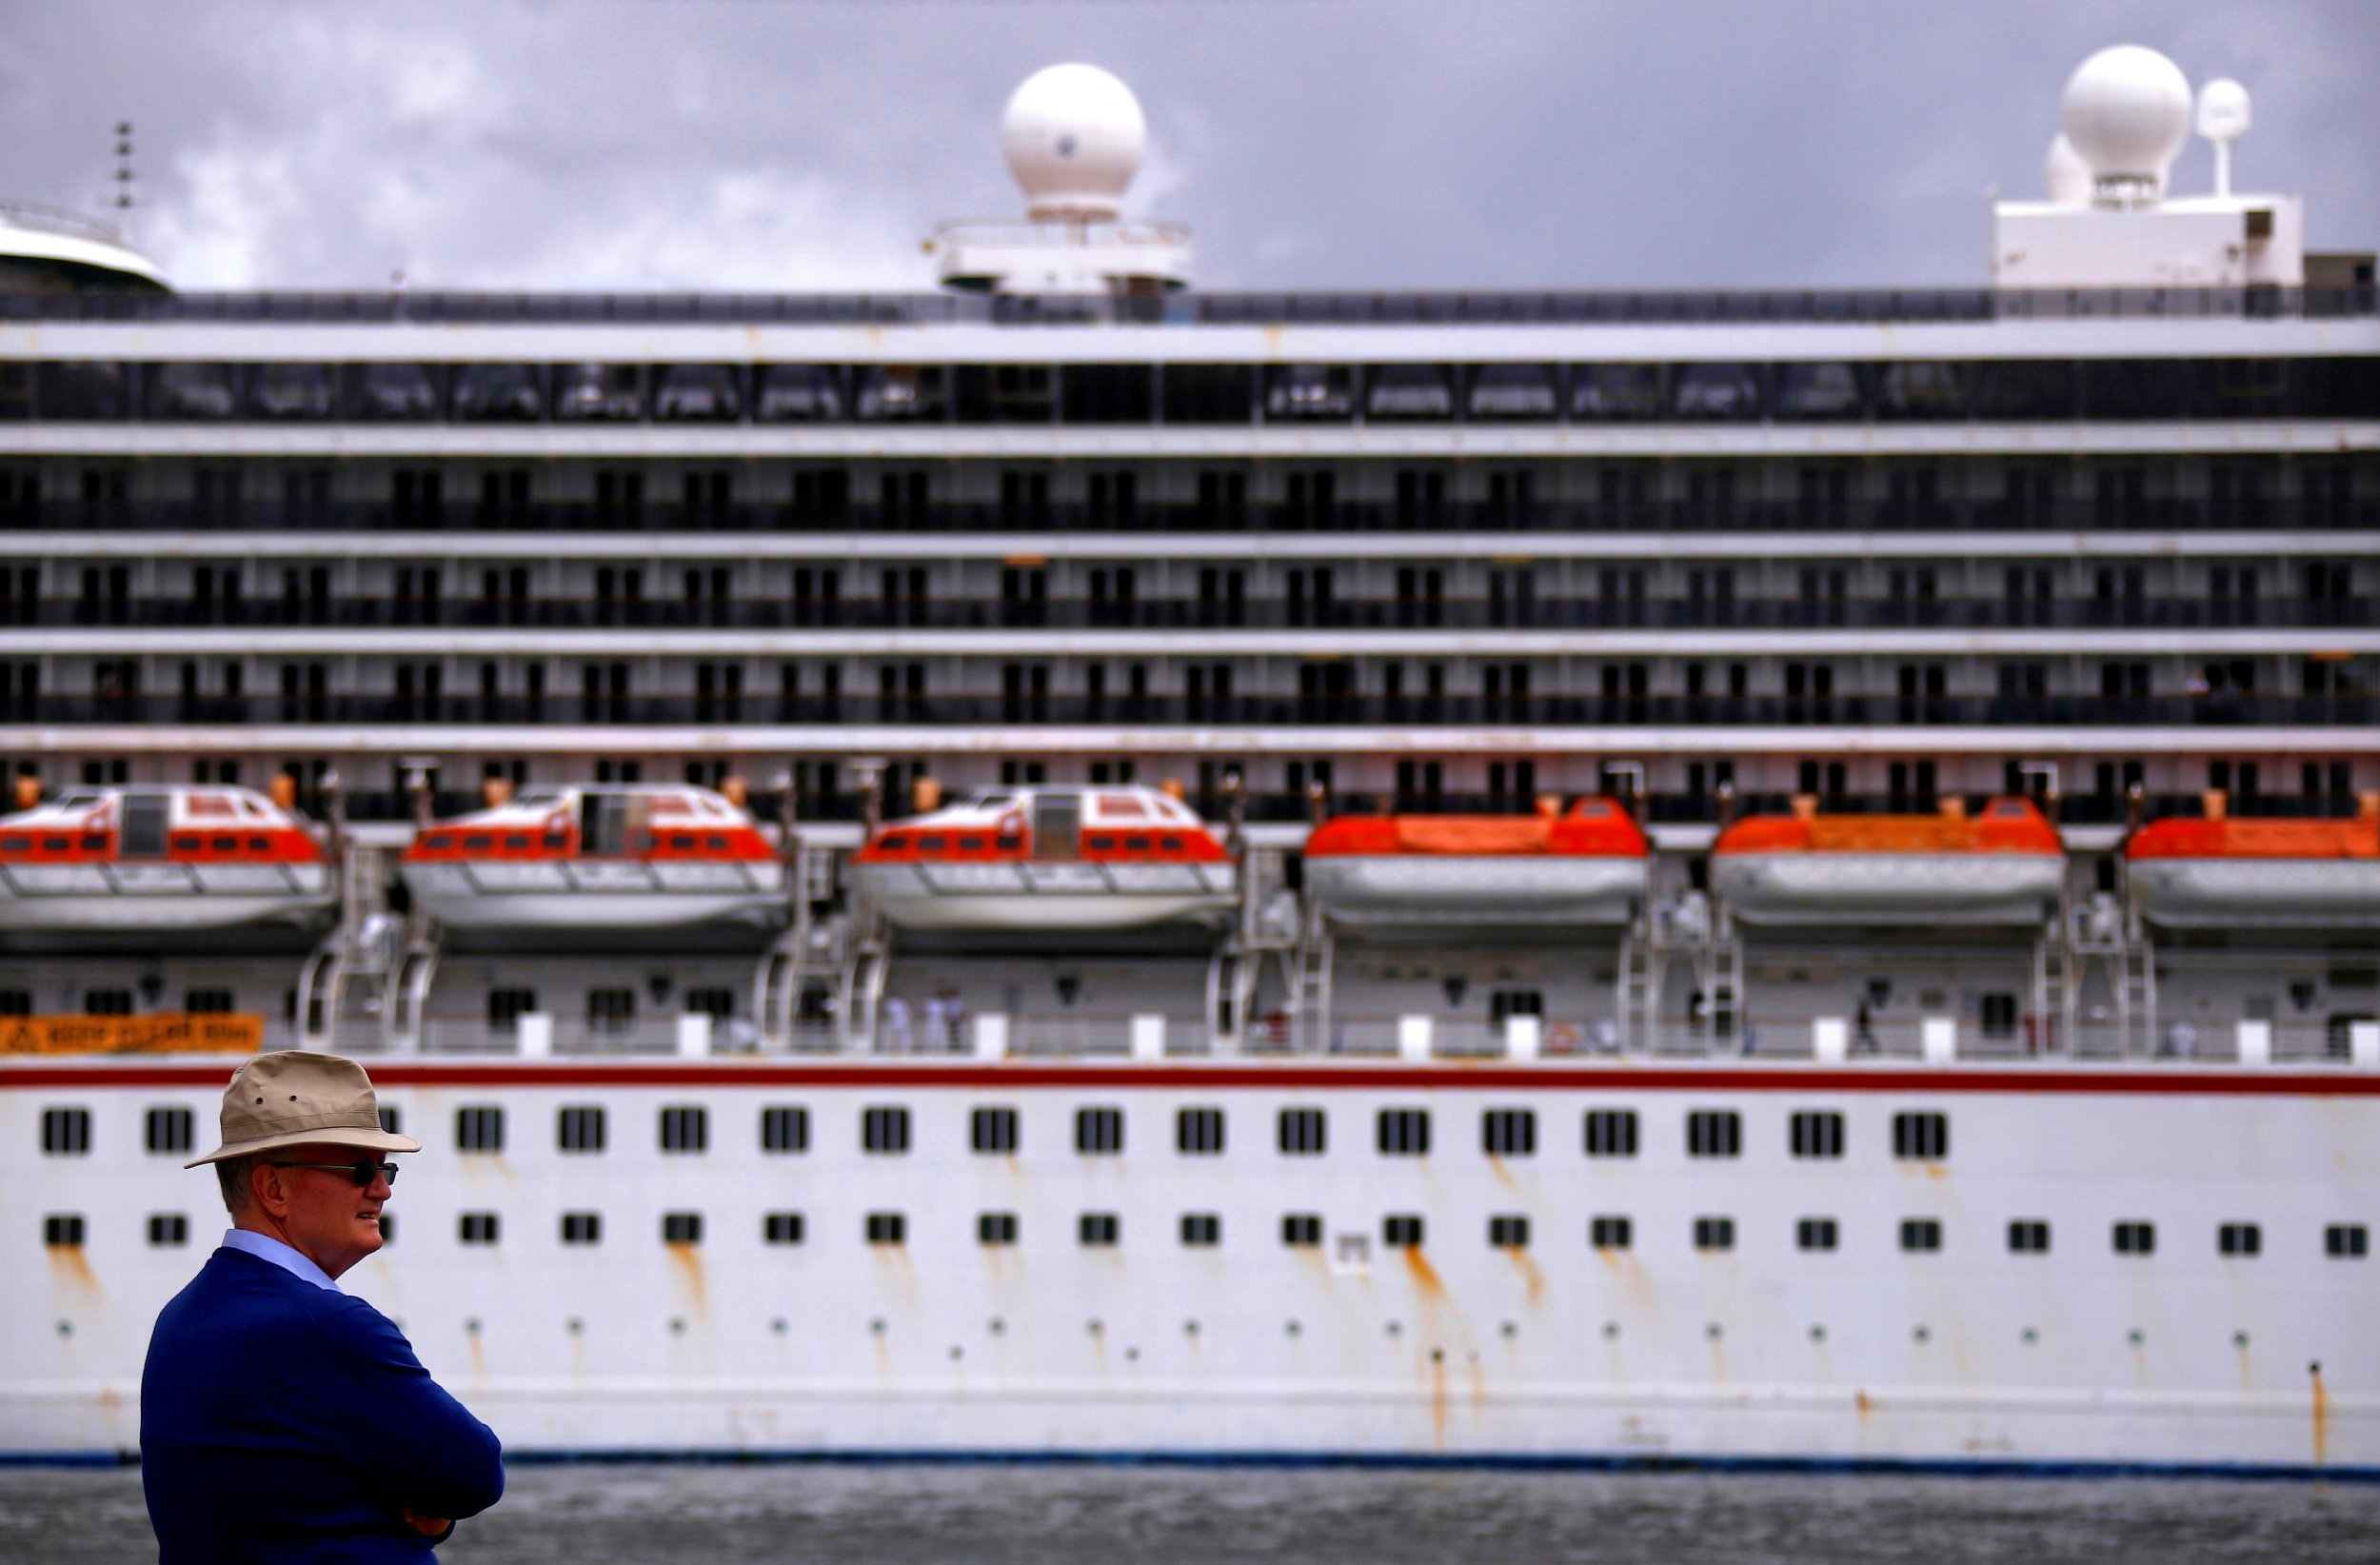 Cruise Ship Refunds Passengers After 1 300 Men Took Over And Turned It Into A Giant Burlesque Show